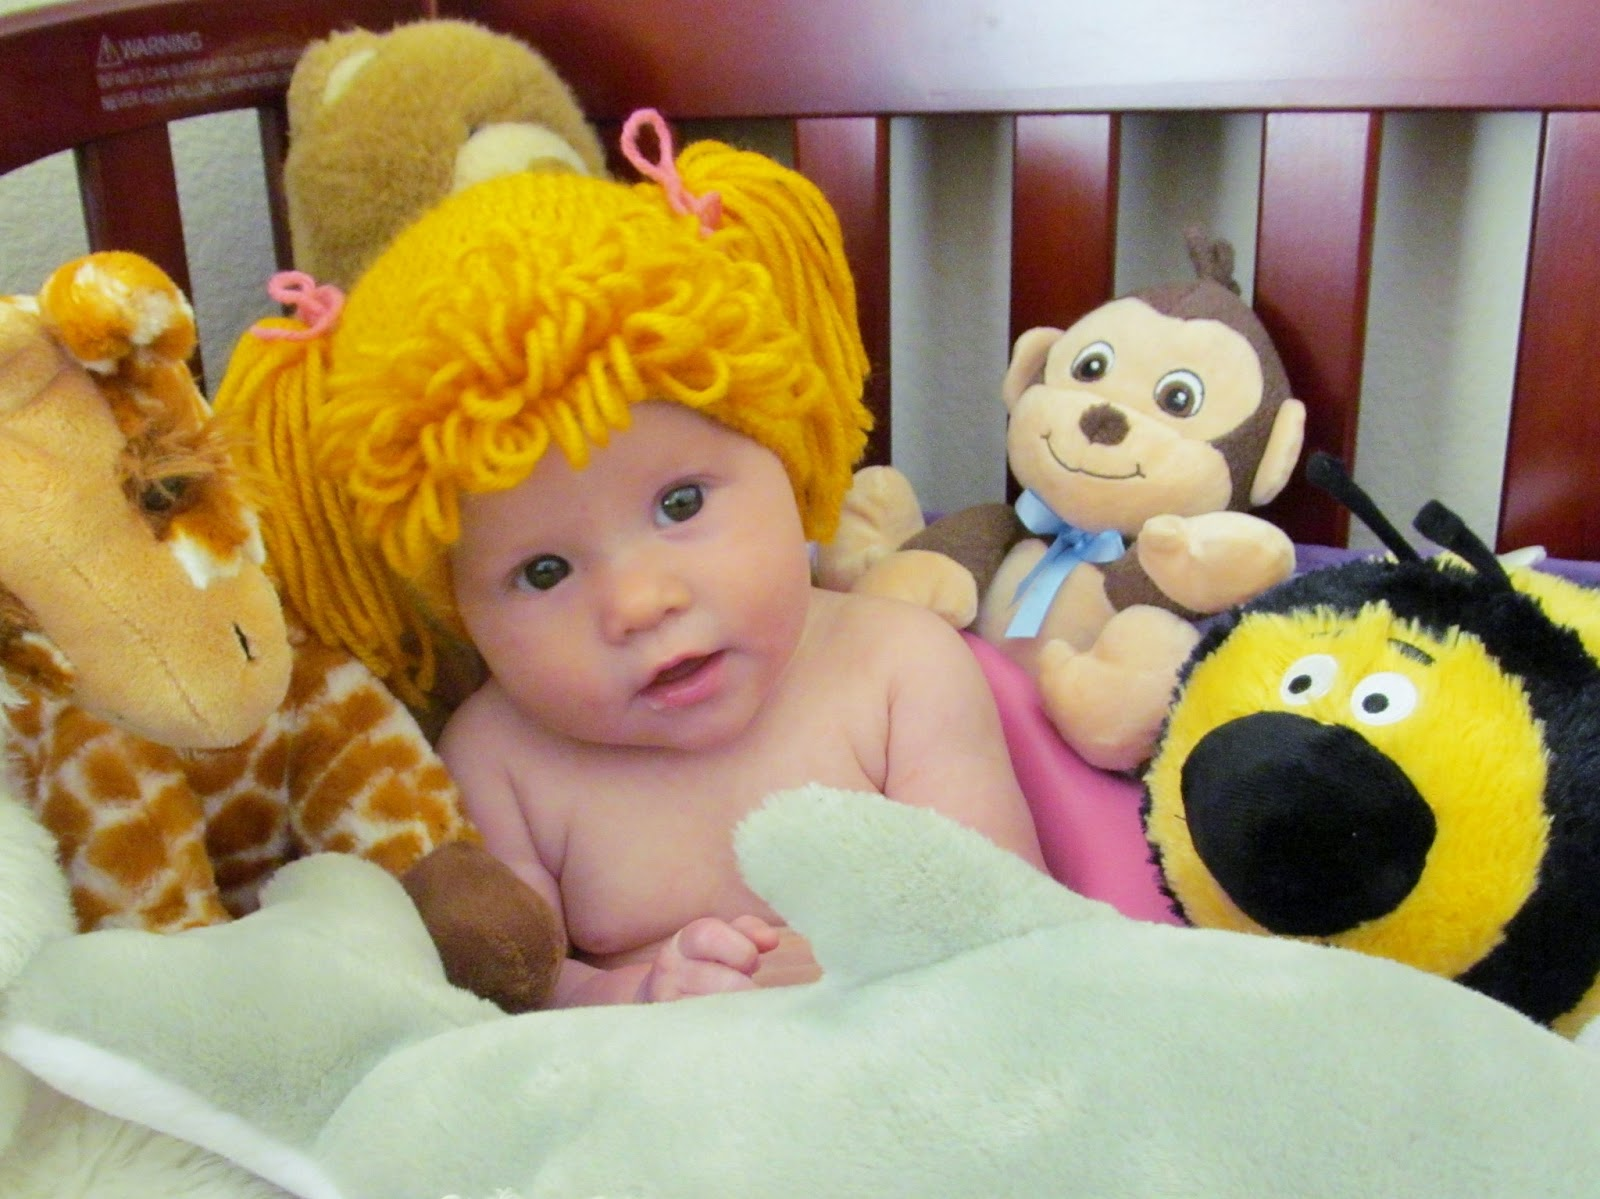 A Crafty Cook: Stash-Buster Challenge - Cabbage Patch Doll Hat